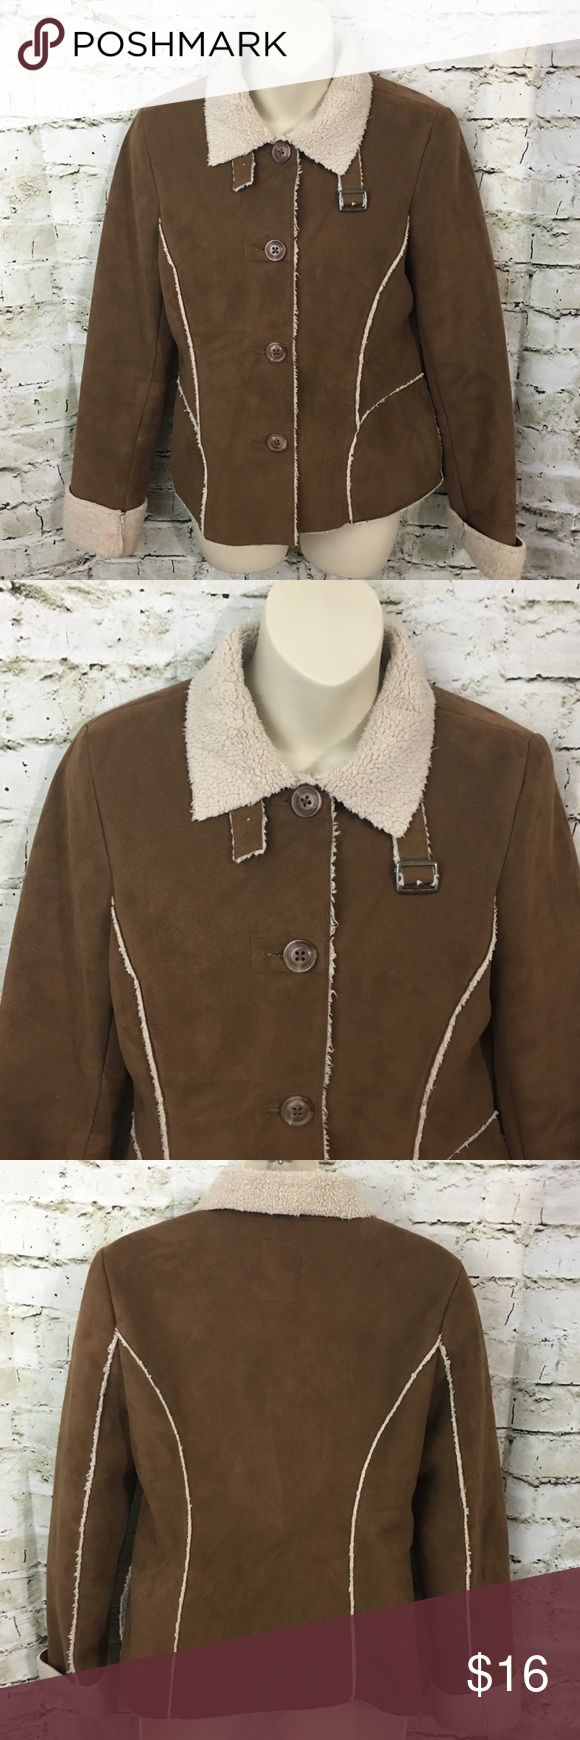 """Old Navy Fleece Lined Faux Suede Jacket Old Navy Women's Fleece Lined Faux Suede Jacket Size Small in good used condition with no flaws.  Measurements: Underarm to underarm: 18"""" Shoulder to hem: 23"""" Old Navy Jackets & Coats"""